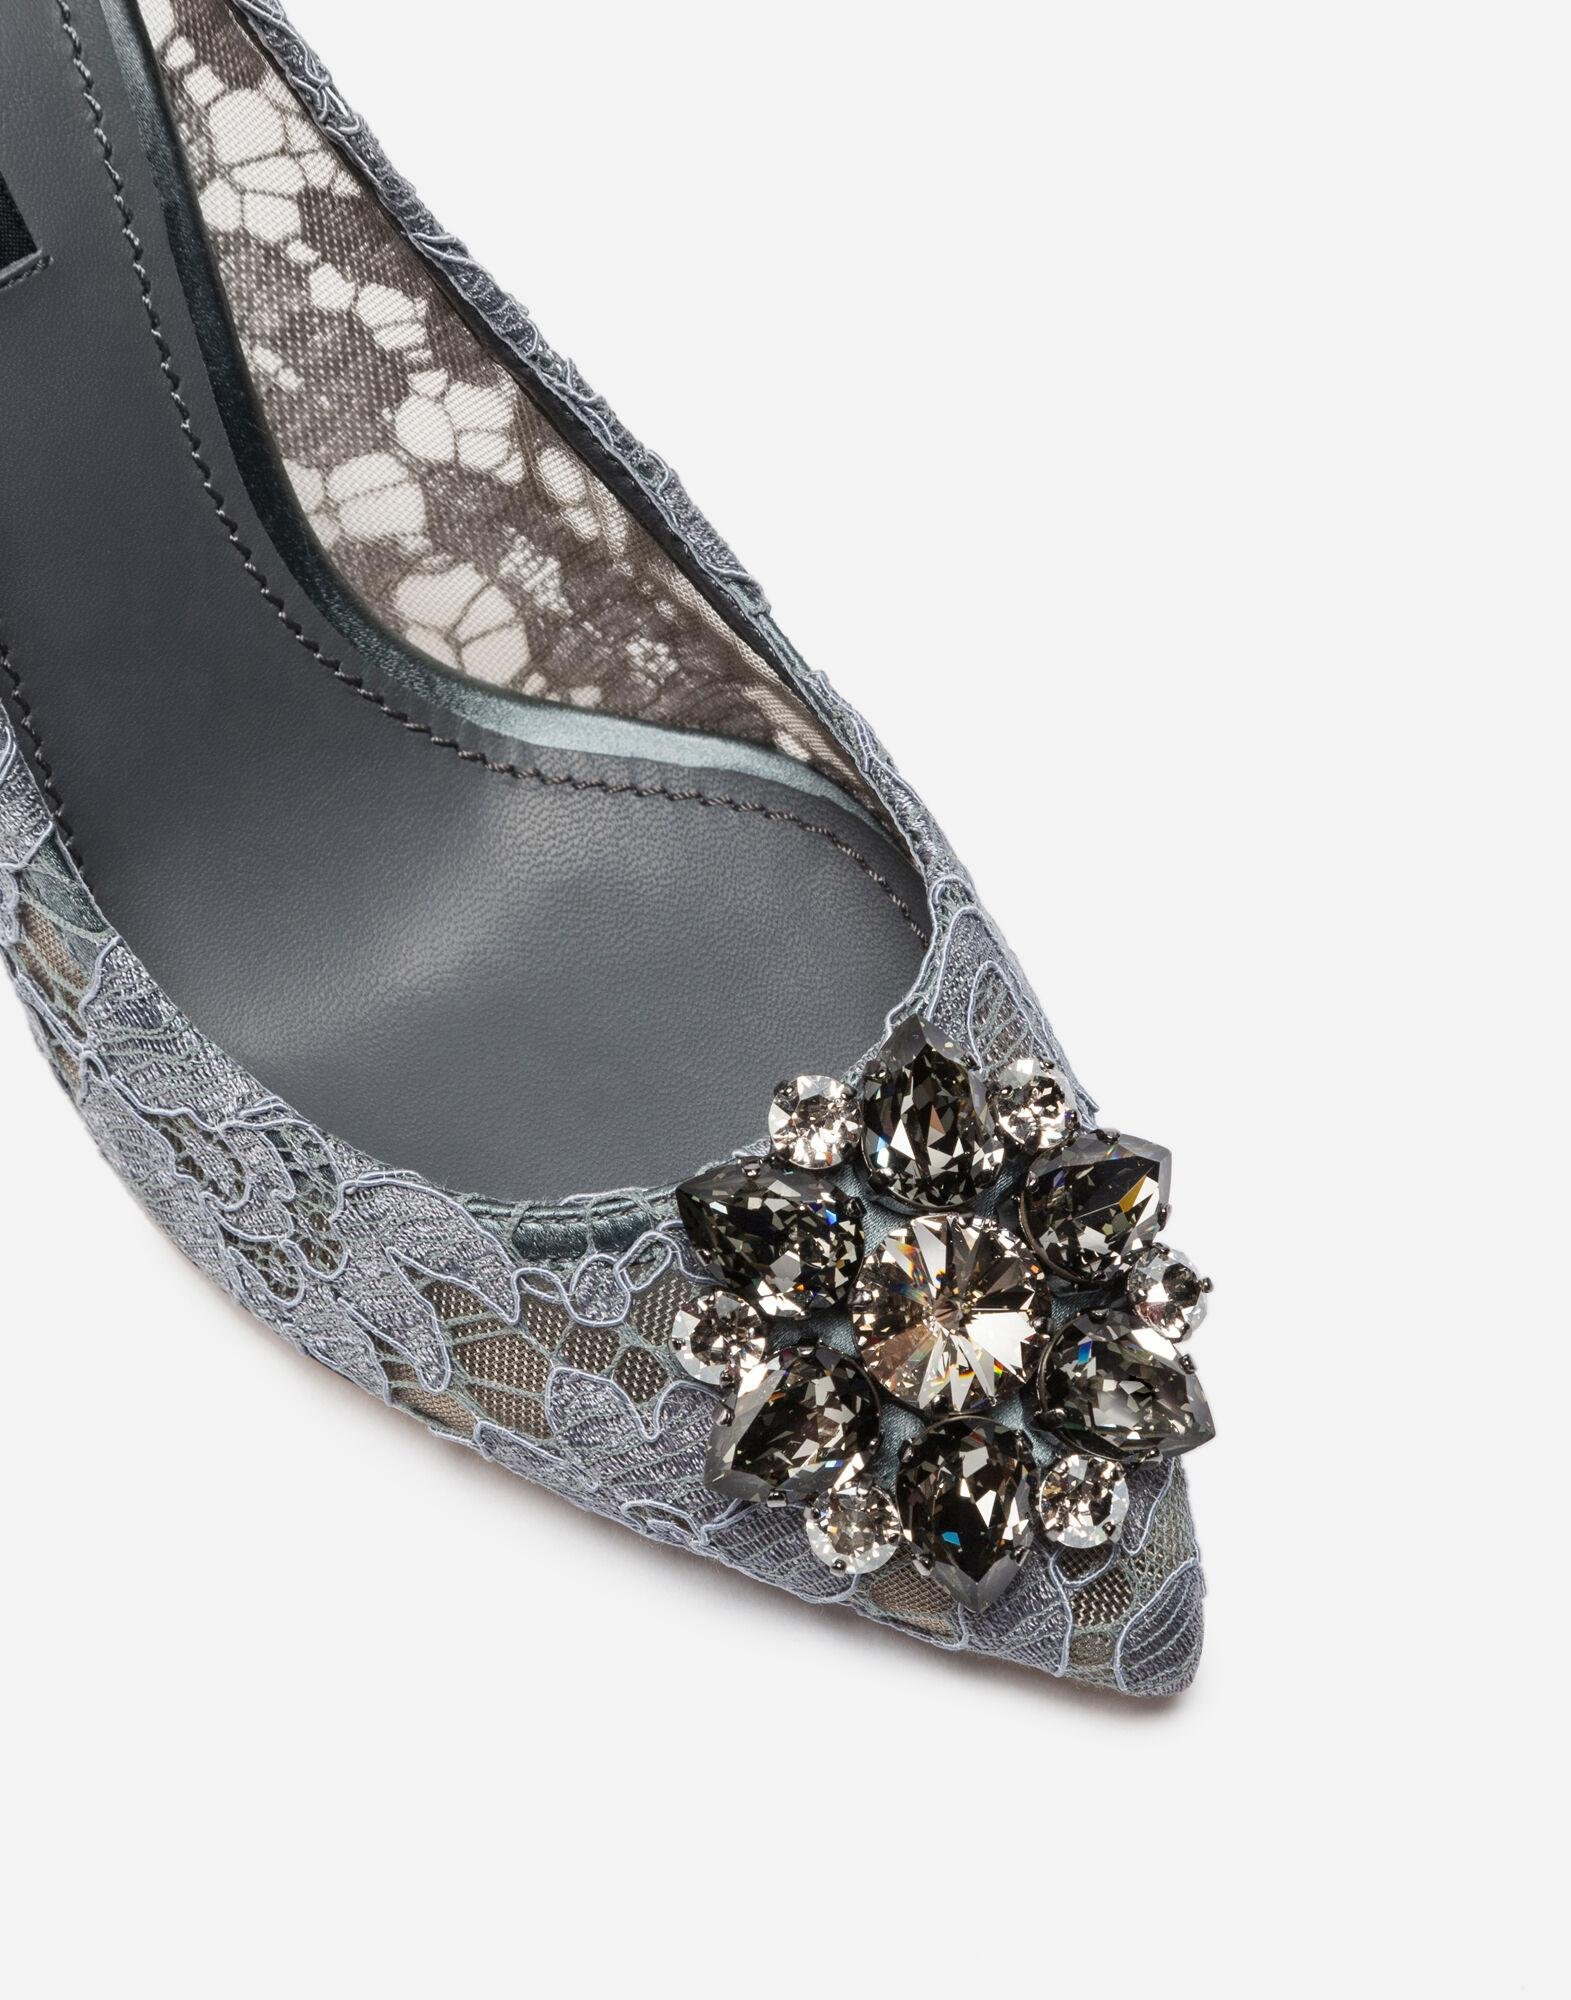 Pump in Taormina lace with crystals 1